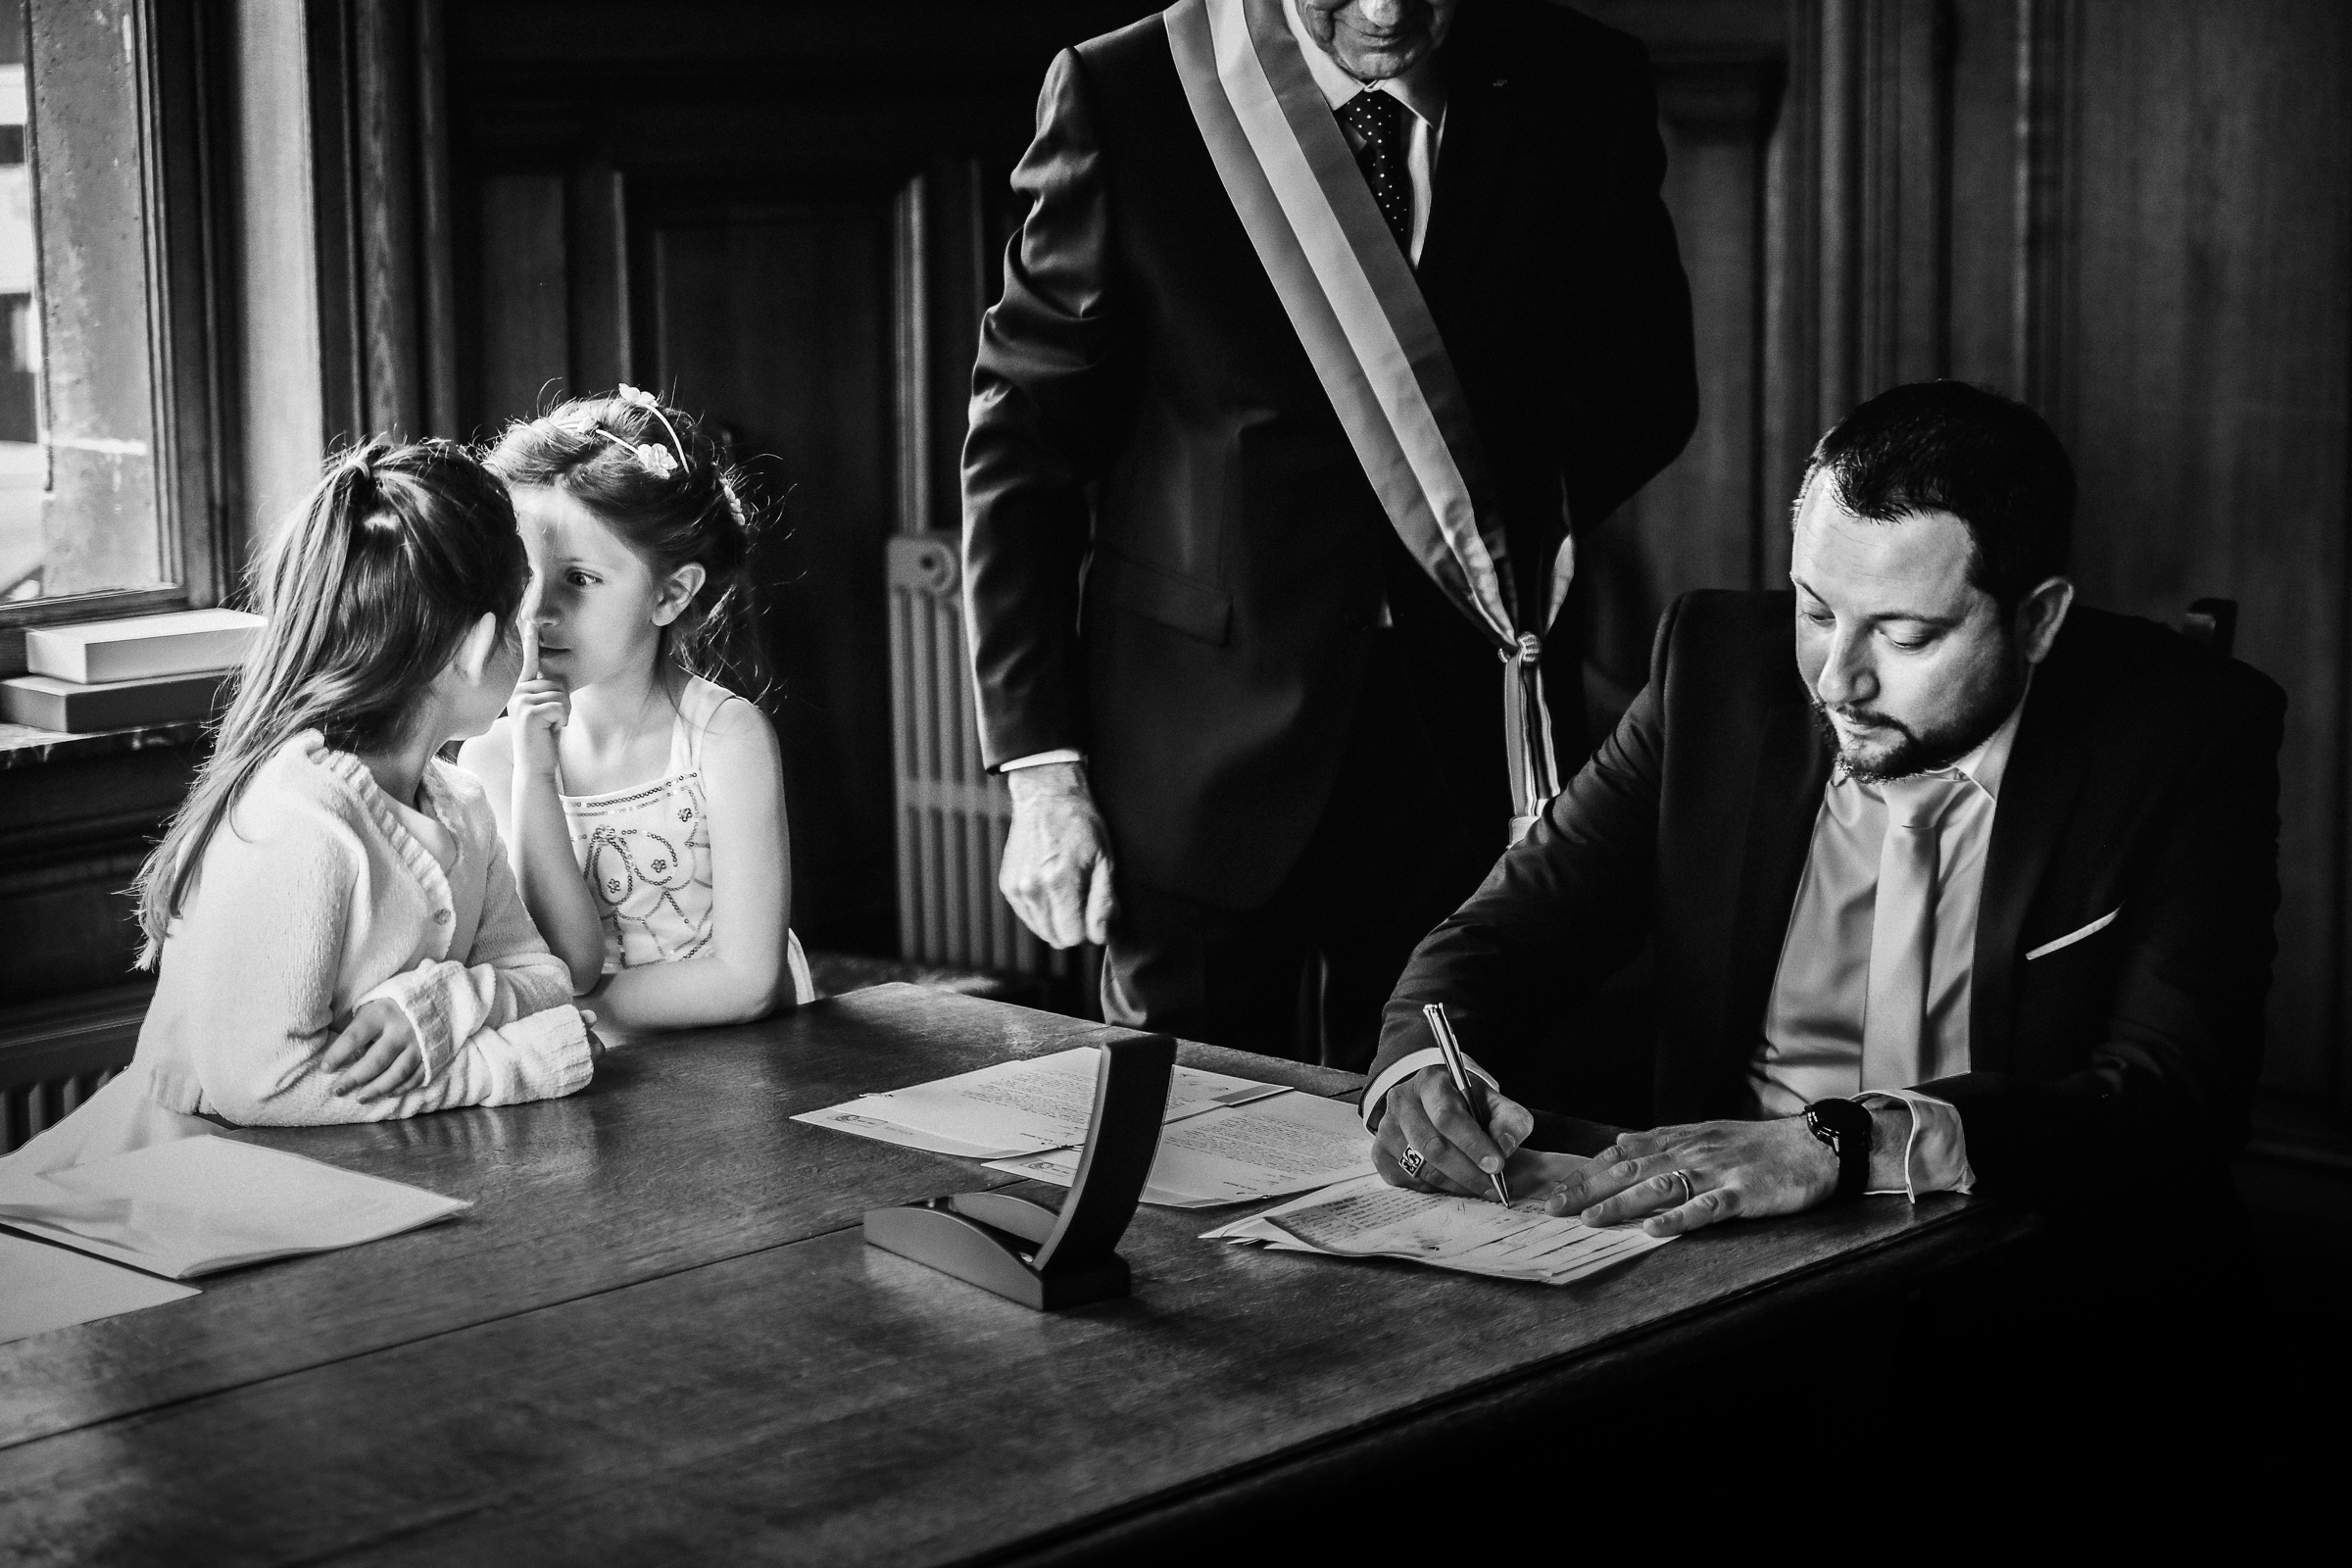 Two kids stand face to face while groom signs wedding certificate - photo by Julien Laurent-Georges